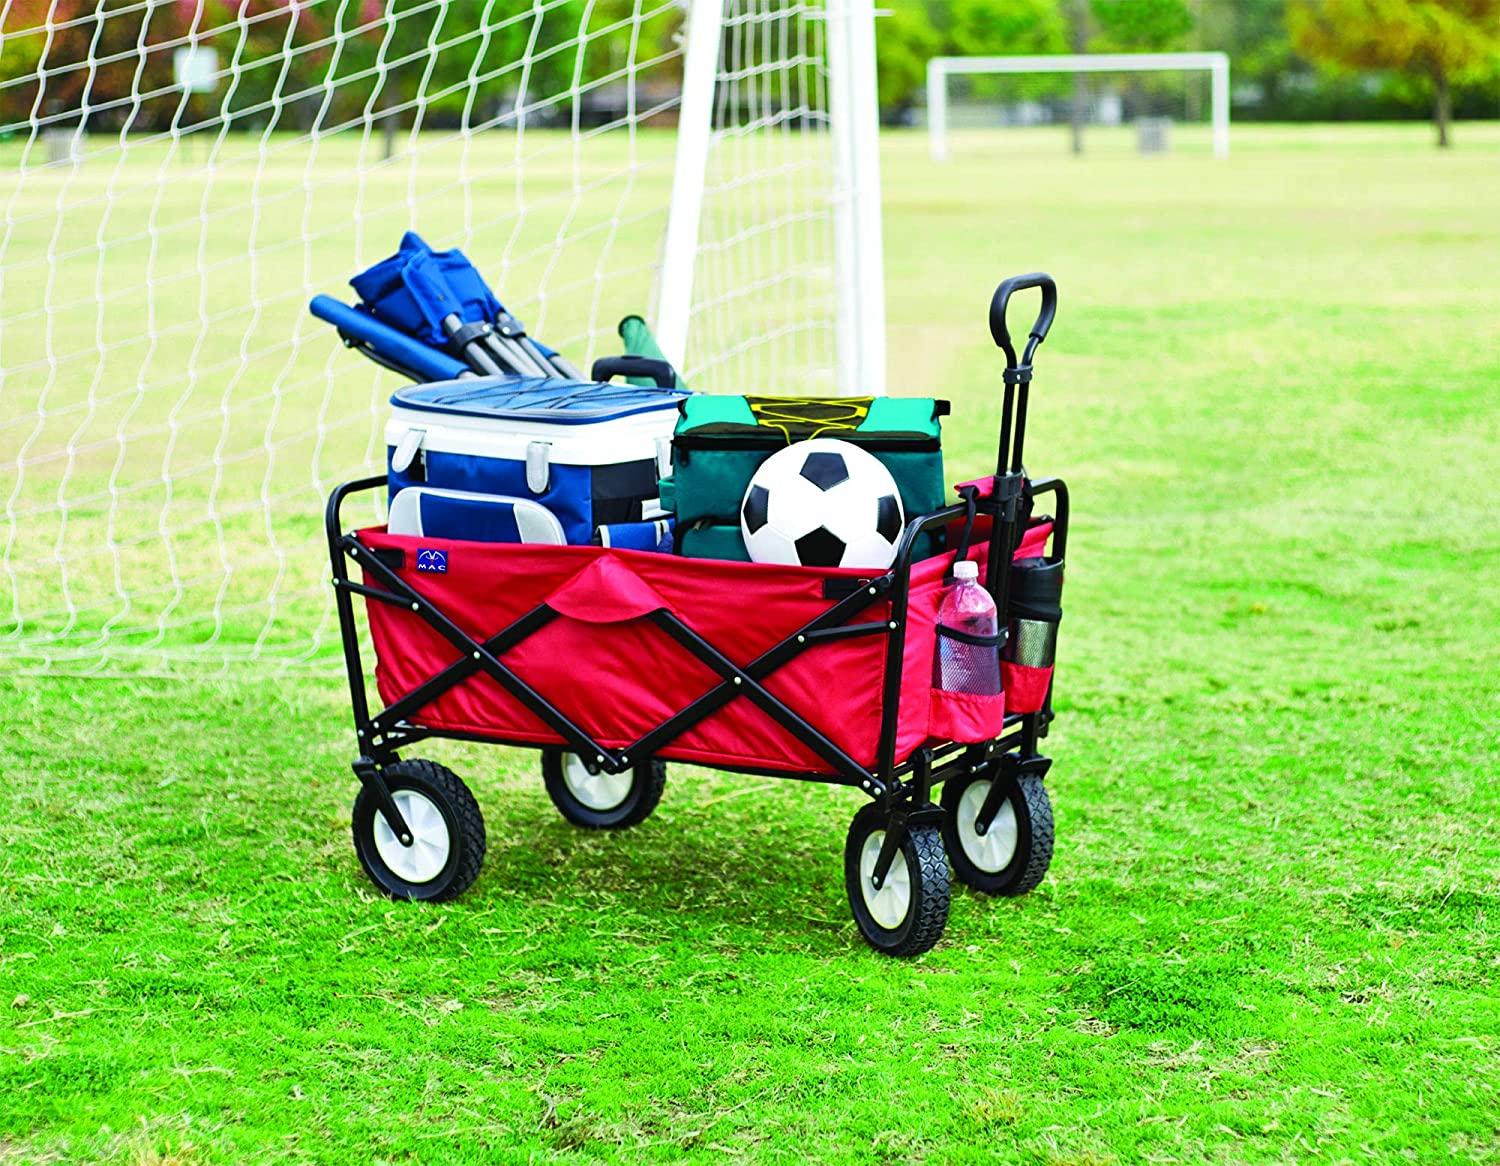 Mac Sports Collapsible Folding Outdoor Utility Wagon2